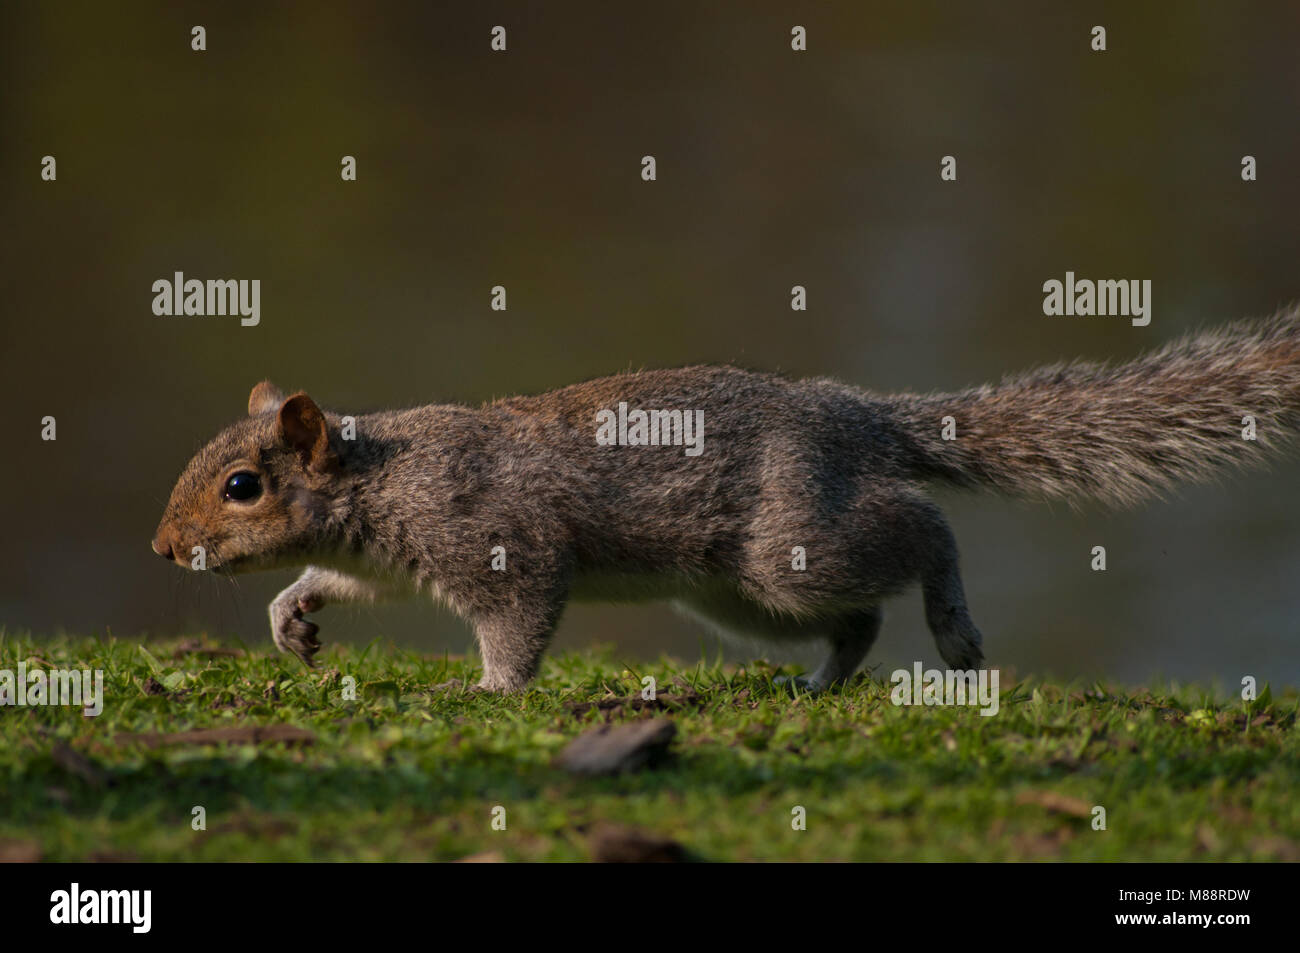 A Stalking Squirrel - Stock Image